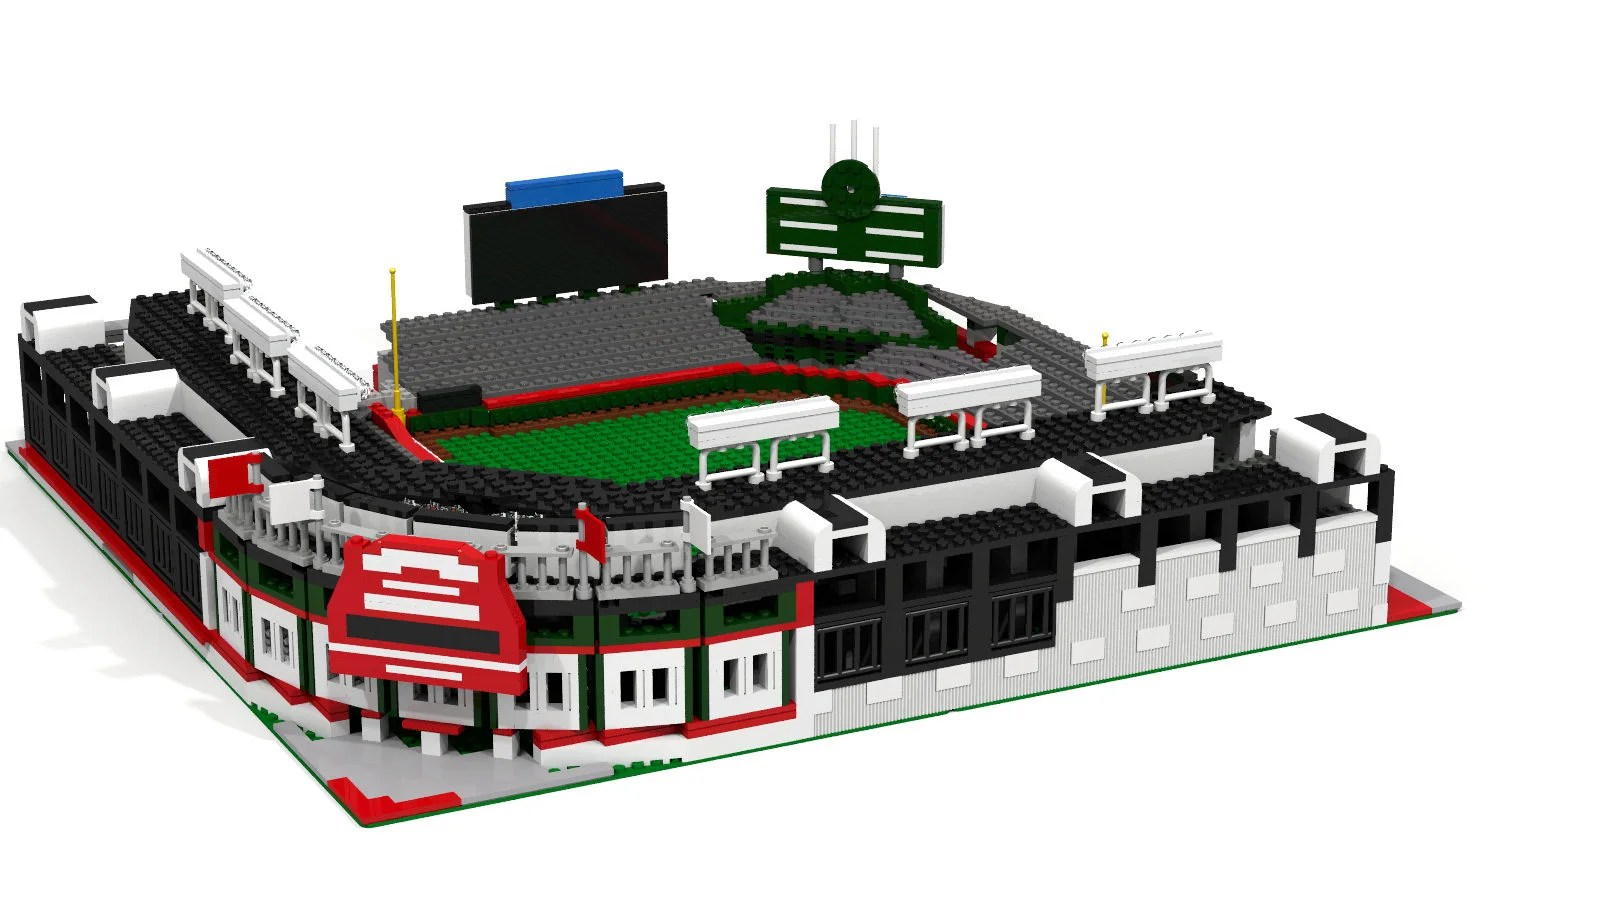 Wrigley Field Chicago Cubs Baseball Stadium Brick Model   Etsy image 0